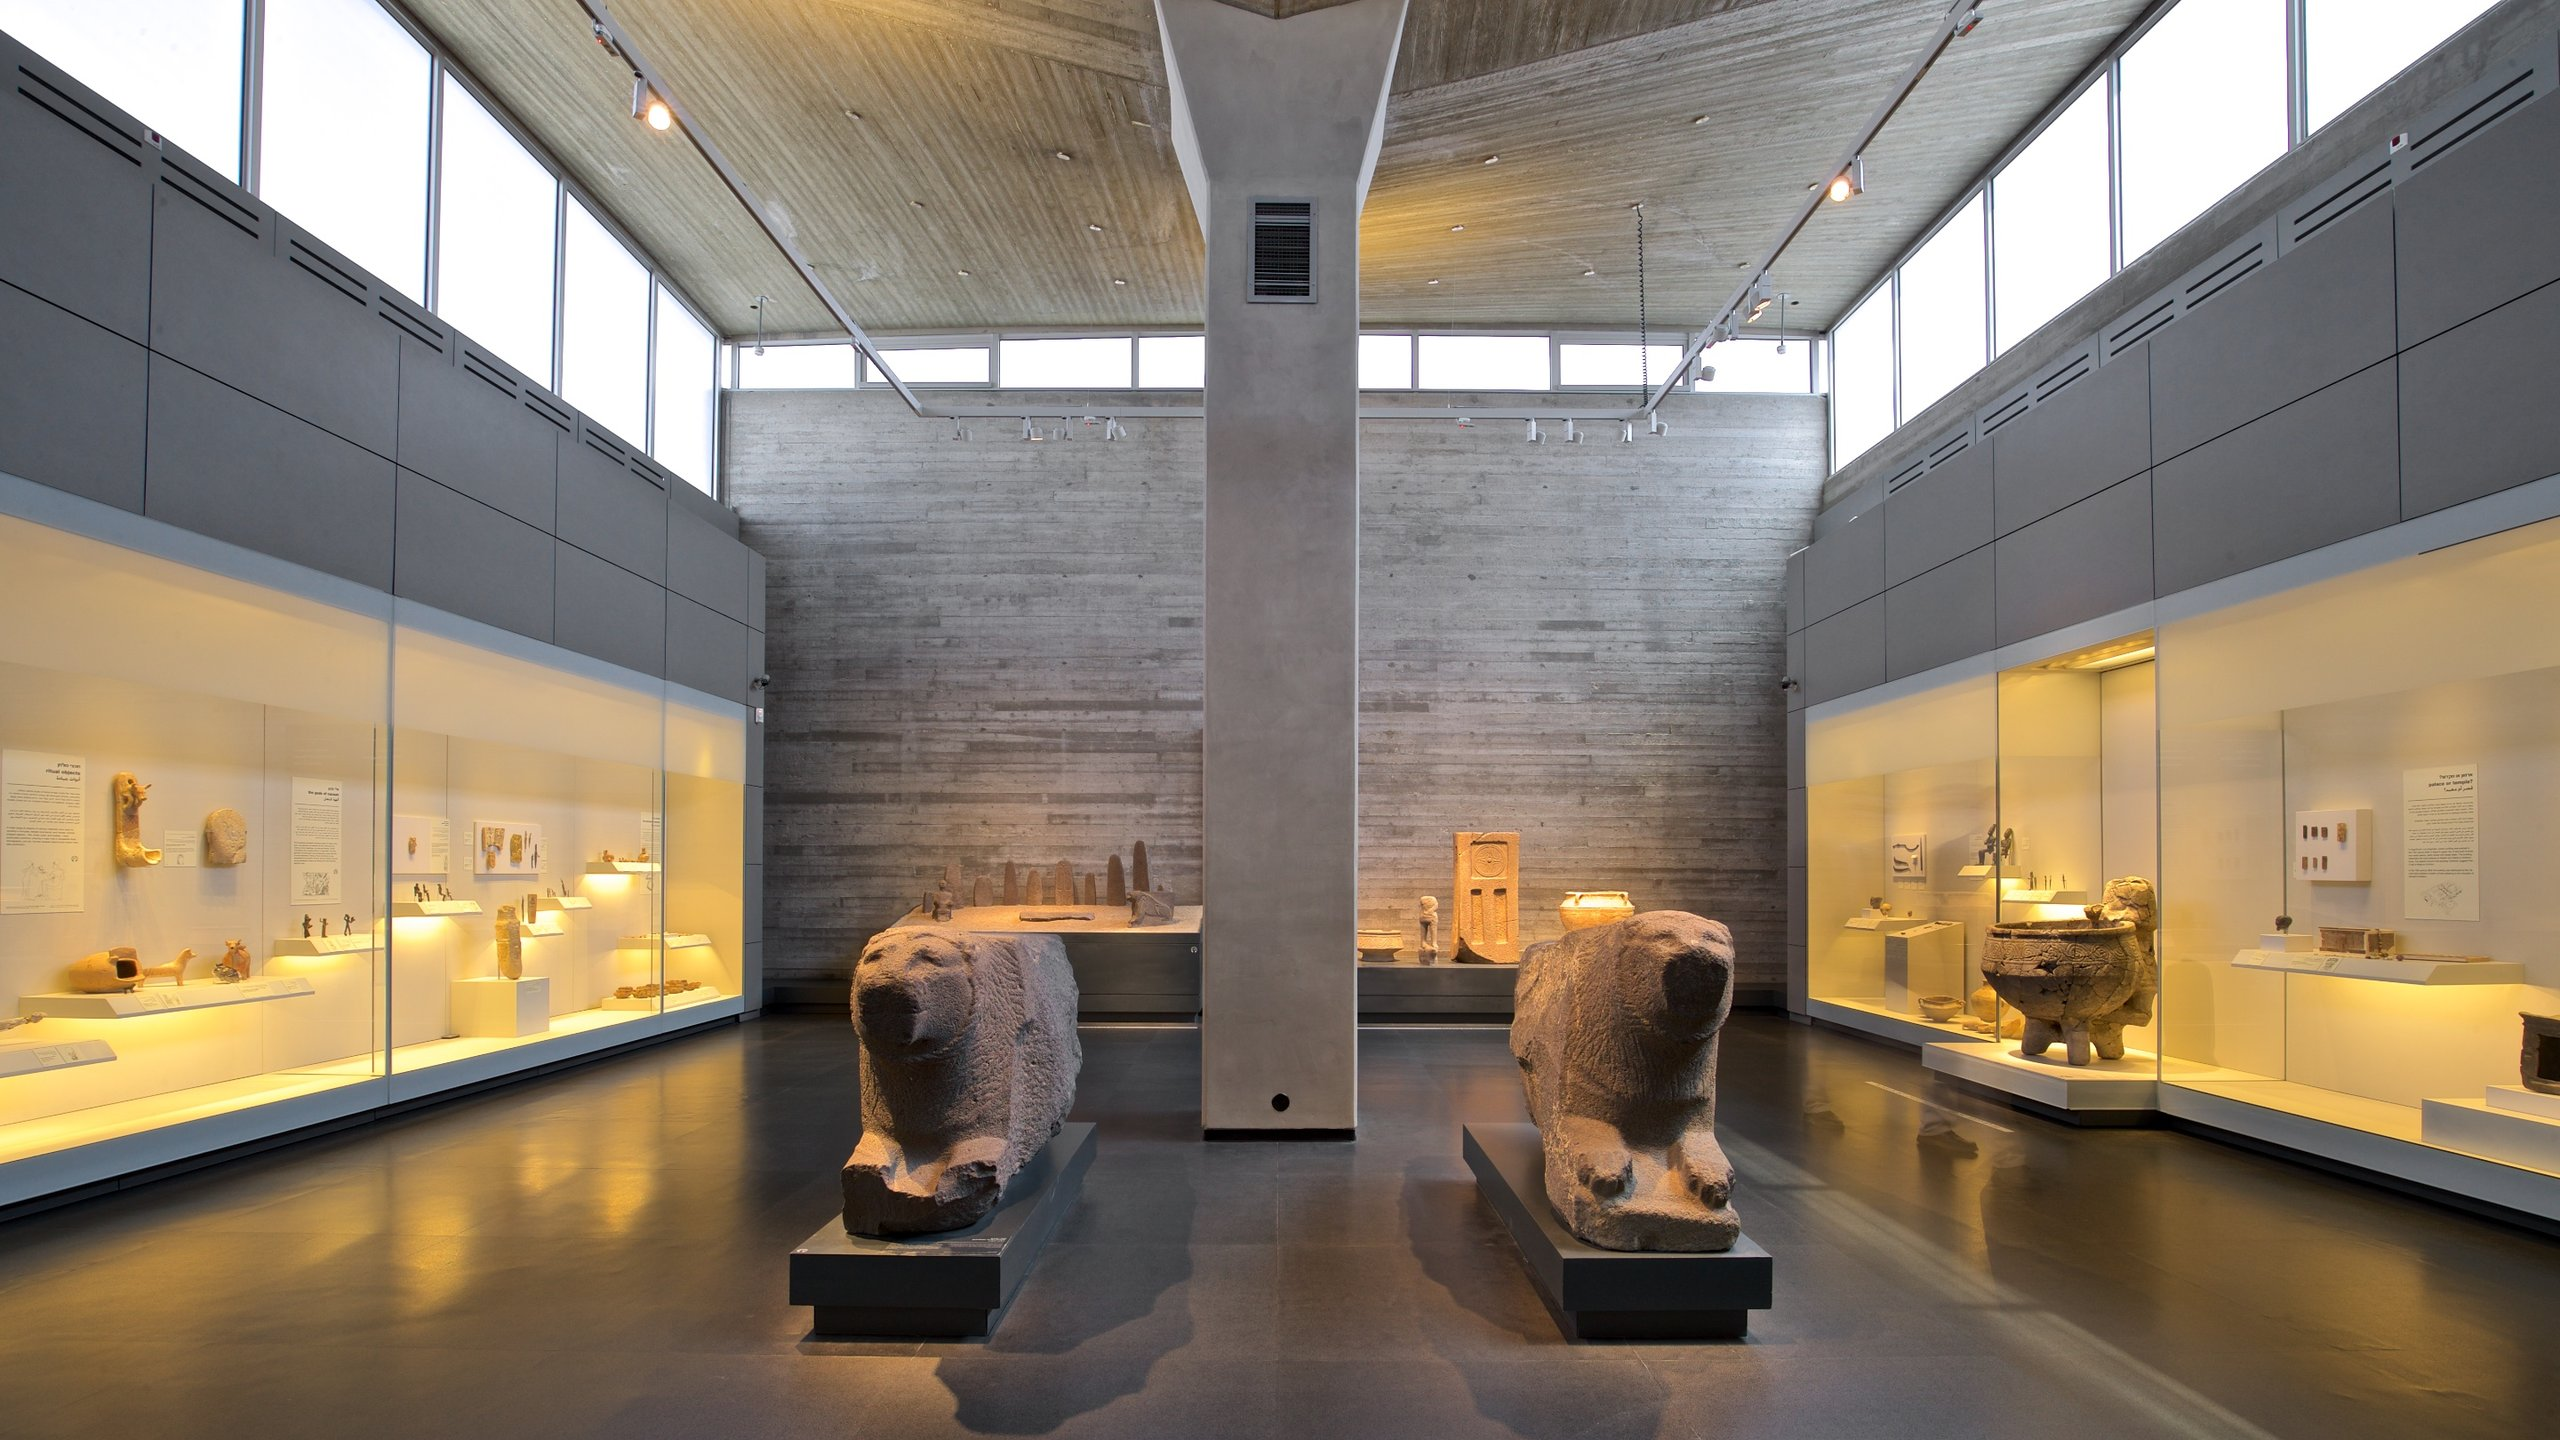 Browse the exhibits at this large museum, which hosts valuable art collections as well as precious historical artifacts, including the Dead Sea Scrolls.